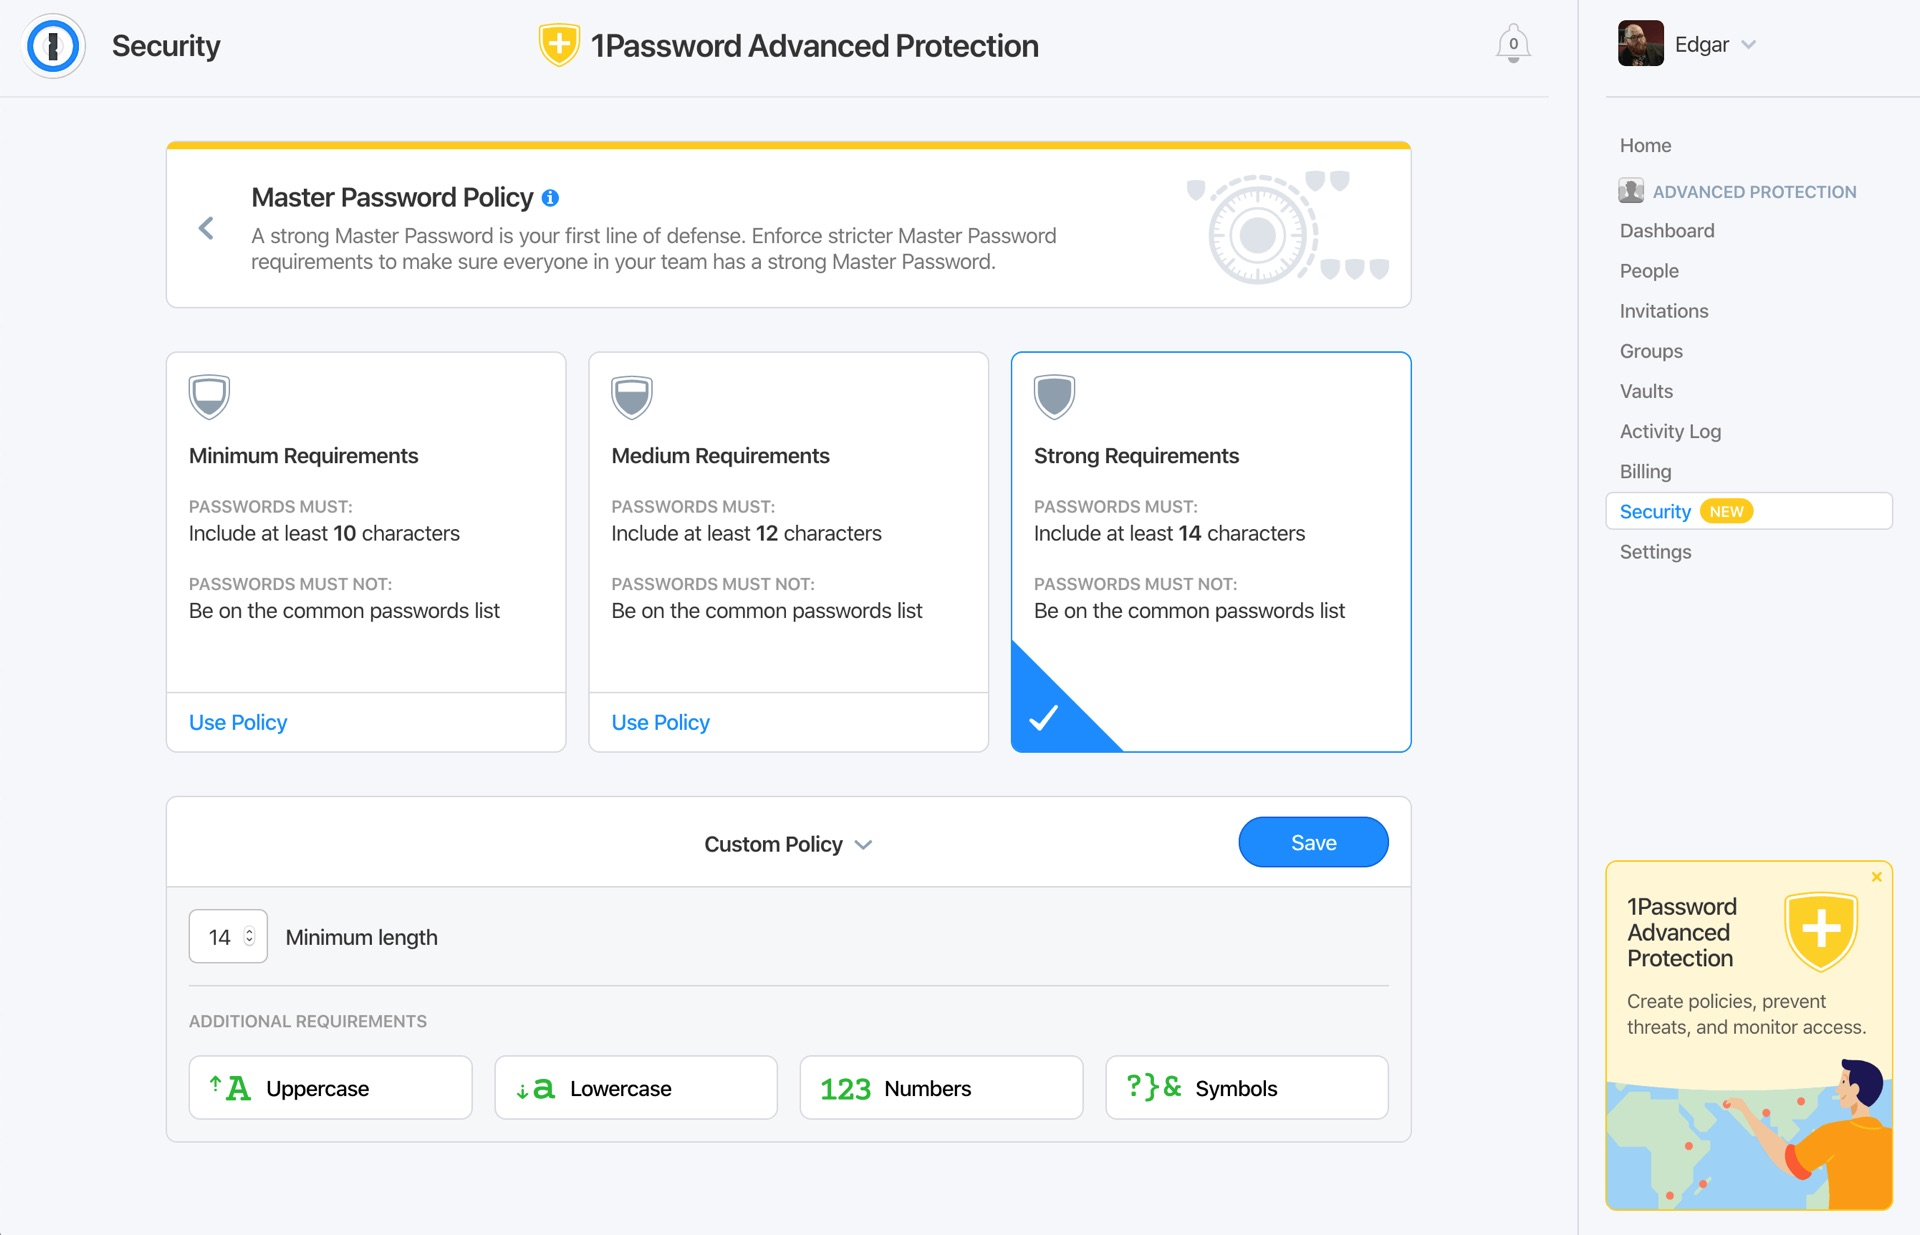 1Password Advanced Protection